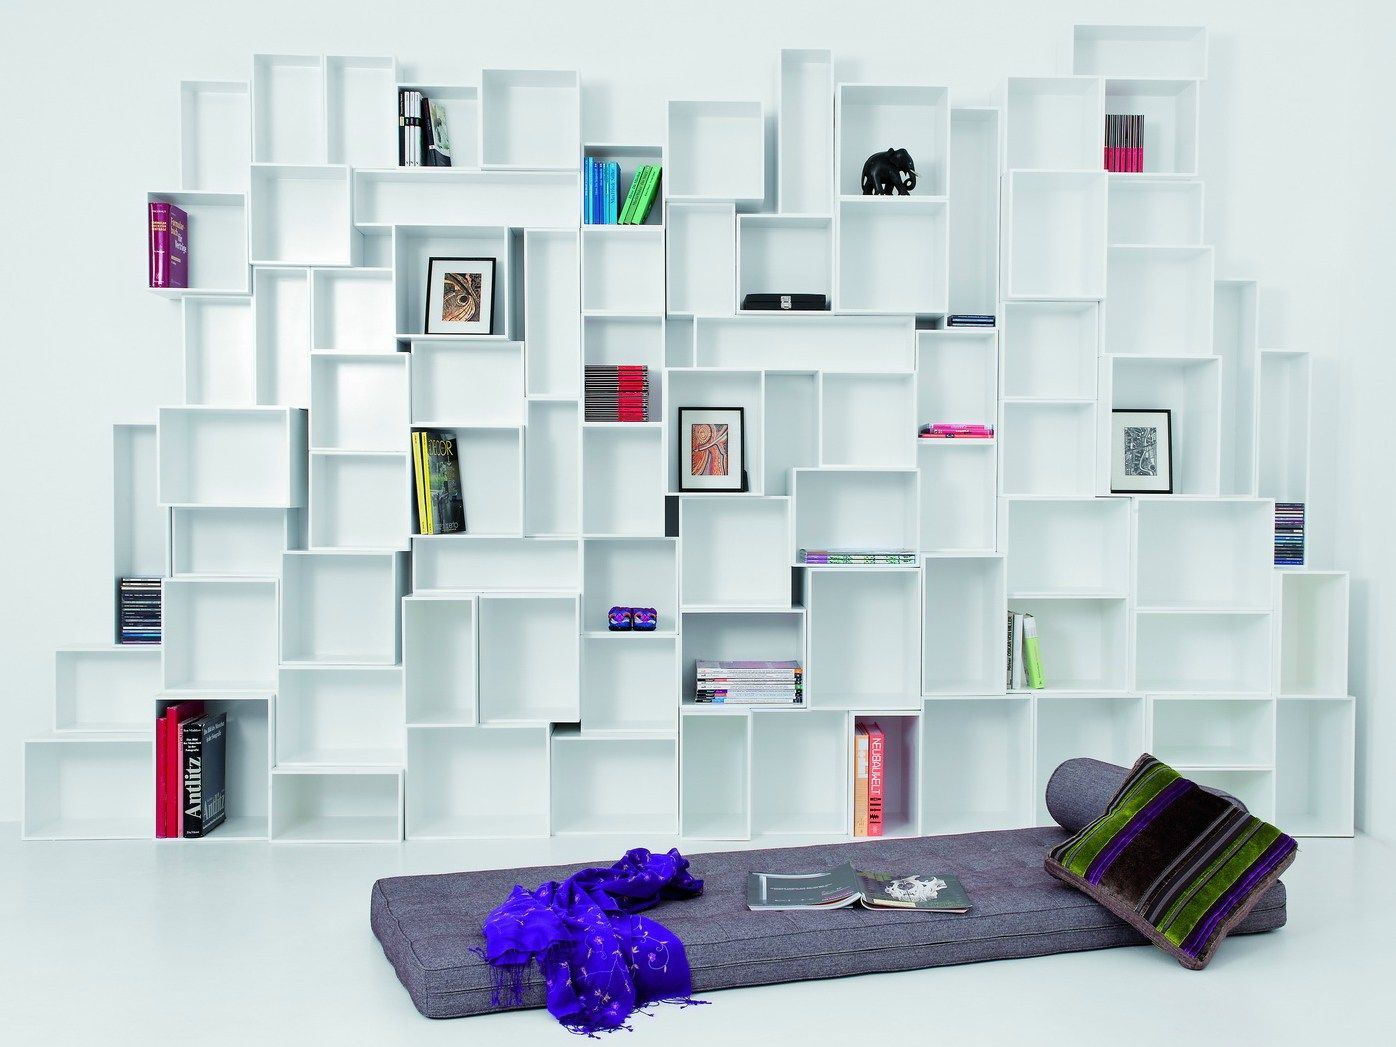 Cubit White Wooden Modular Shelving Unit Built In Bookshelves . Impressing  Modern Shelving Units For Your Inspiration To Make Over Your Room. Awesome Design